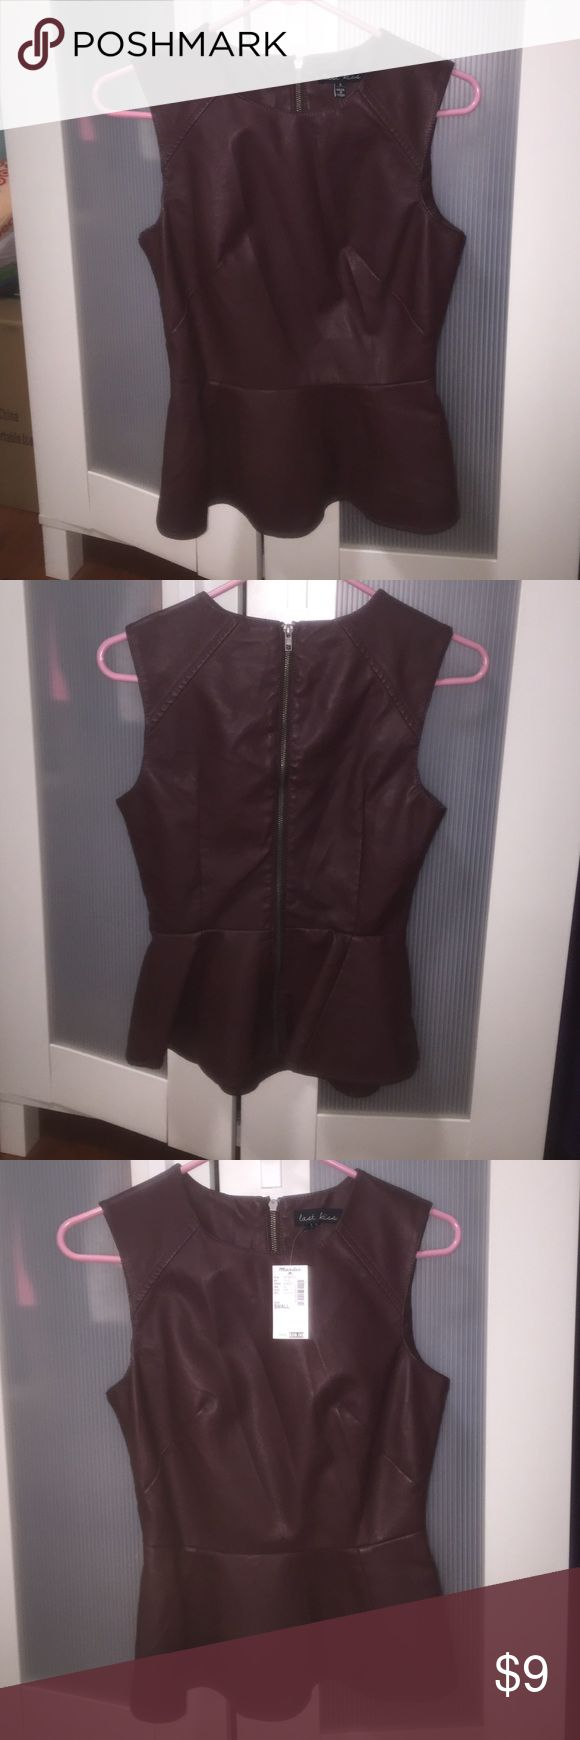 Plum- colored, pleather peplum top Stylish, pleather peplum top. Form-fitting. Comfortable. Never worn. Tag still attached. Mandee Tops Blouses